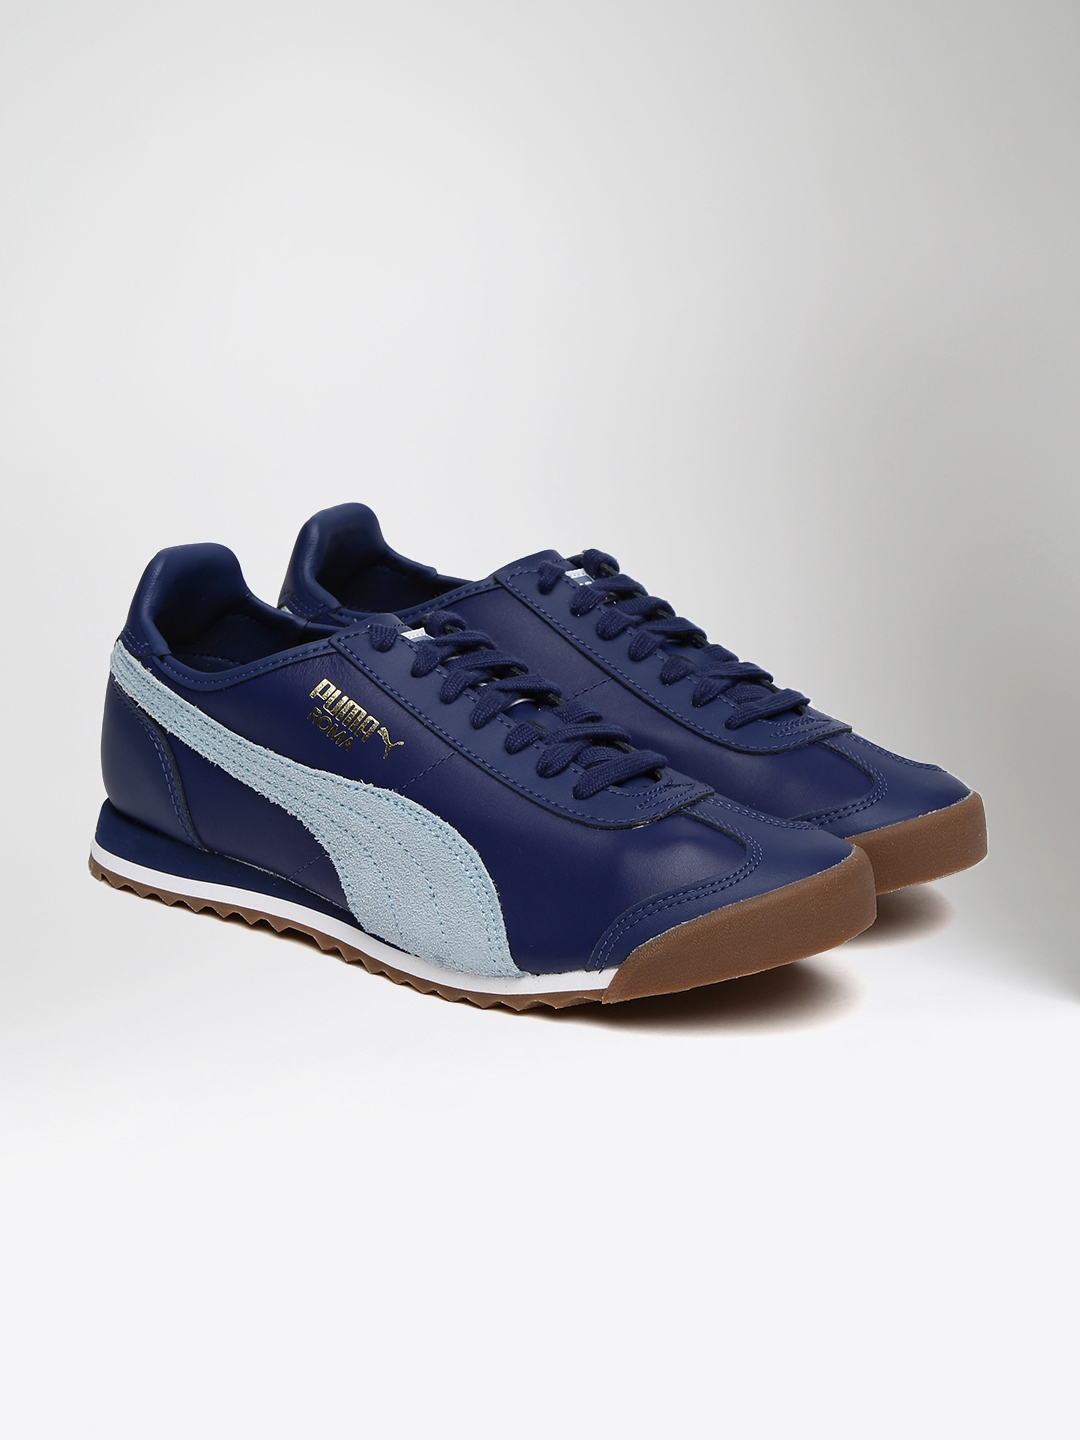 Buy Puma Men Blue Roma OG 80s Sneakers - Casual Shoes for Men ... 63242dad8